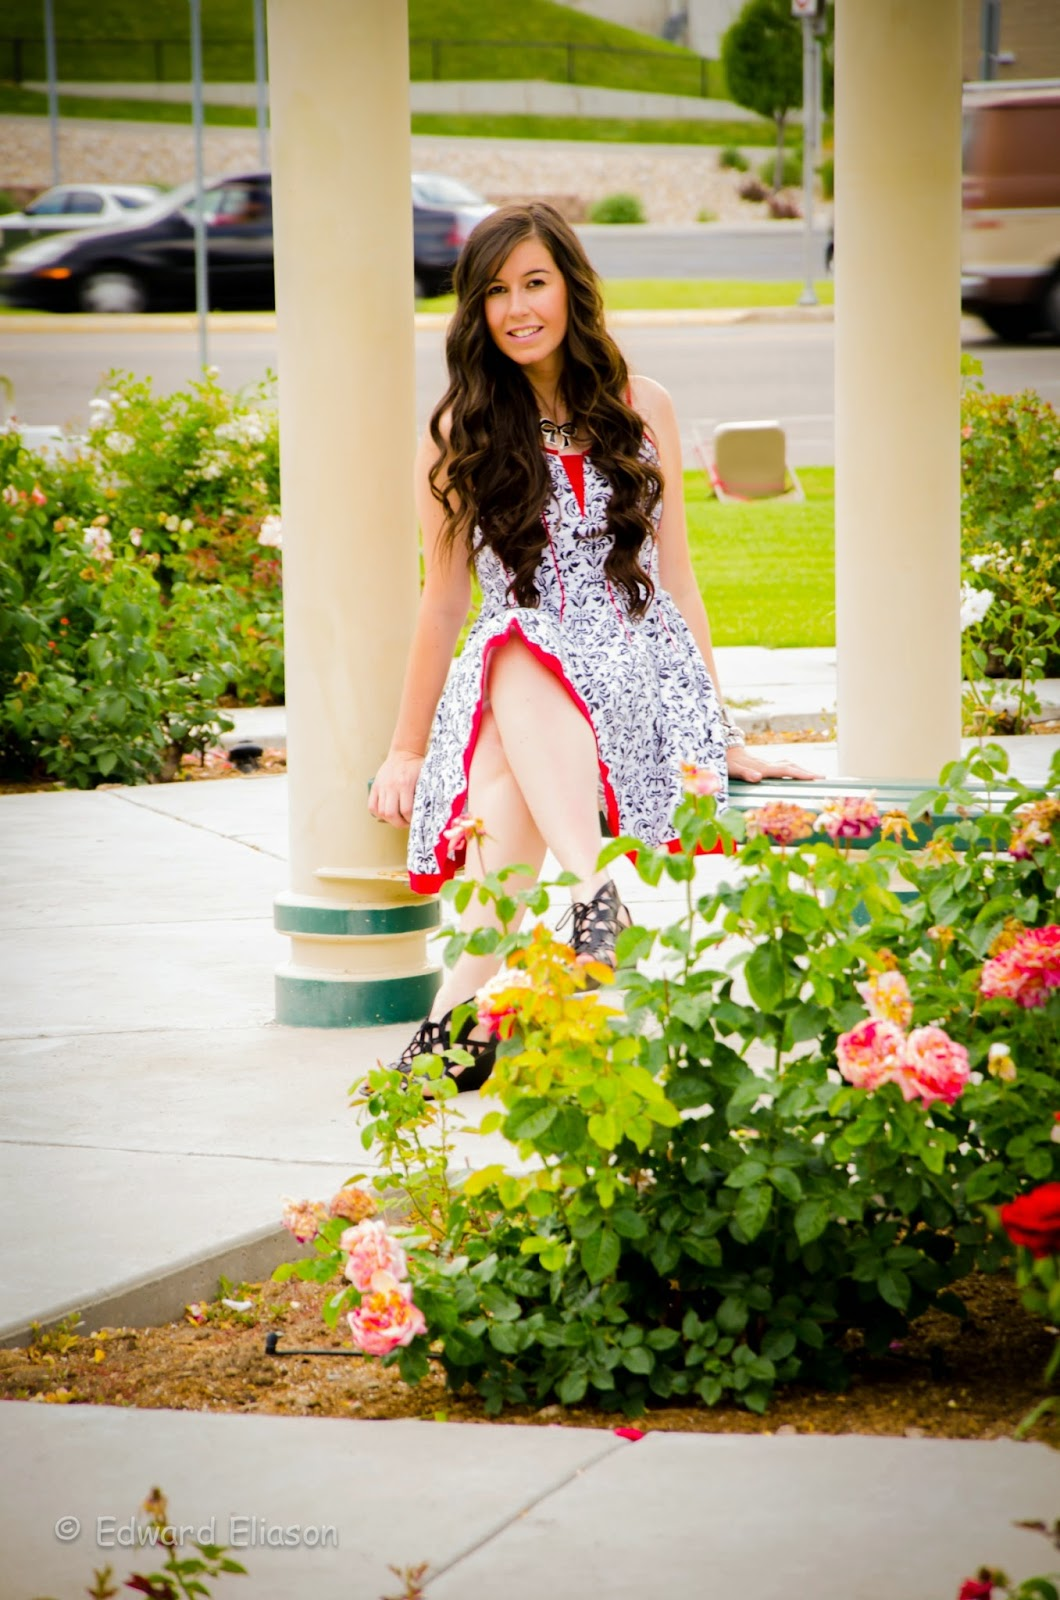 joe browns, joe browns dress, black and white floral dress, floral dress, pop of red, chinese print, murray park, utah parks, pretty, long curly hair, hair, wavy hair, beachy hair, pretty dress,